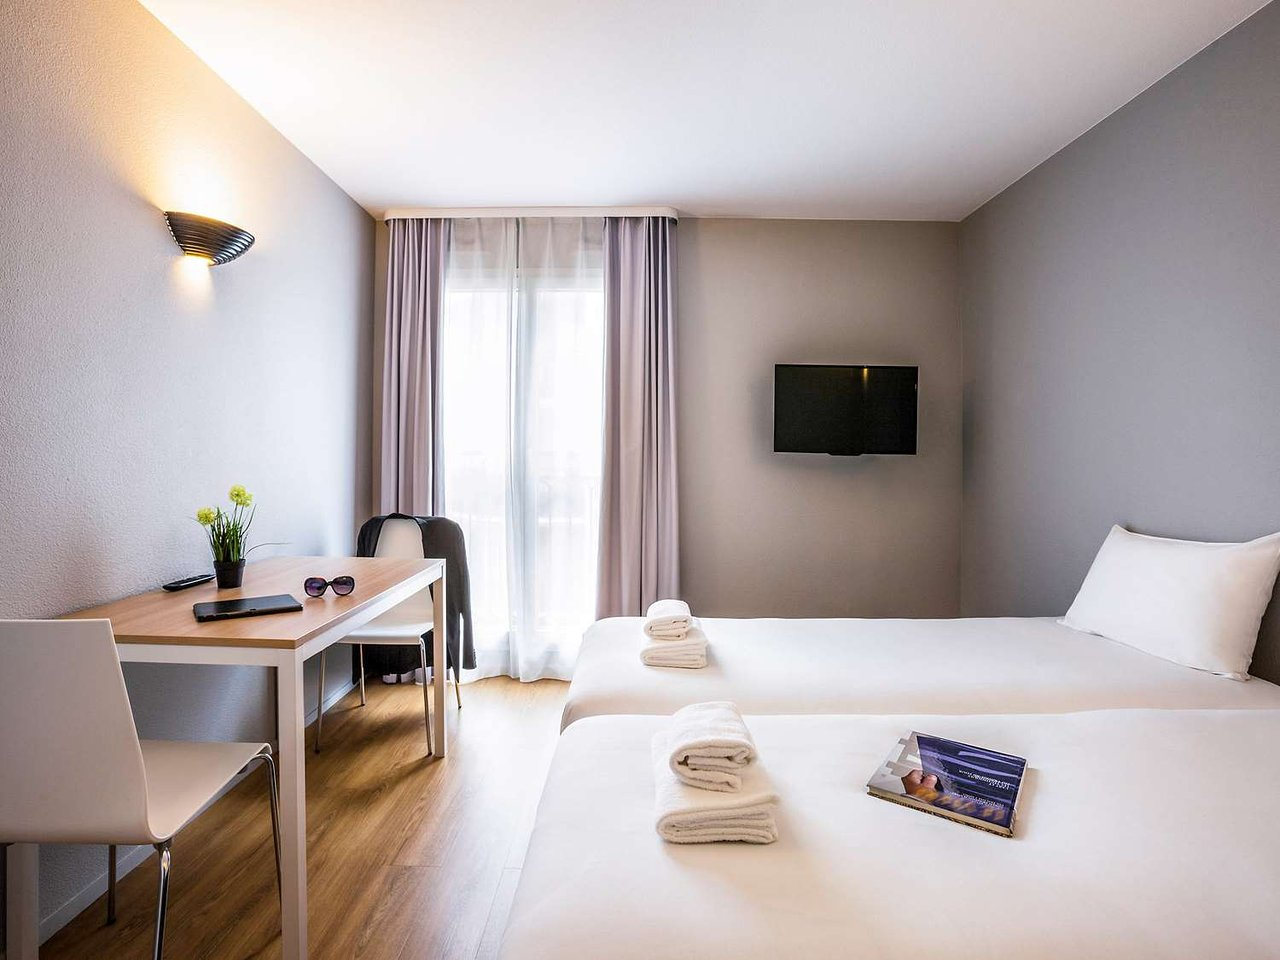 Hotel Moderne Maison Alfort The 5 Best Hotels In Maisons Alfort For 2019 From 26 Tripadvisor